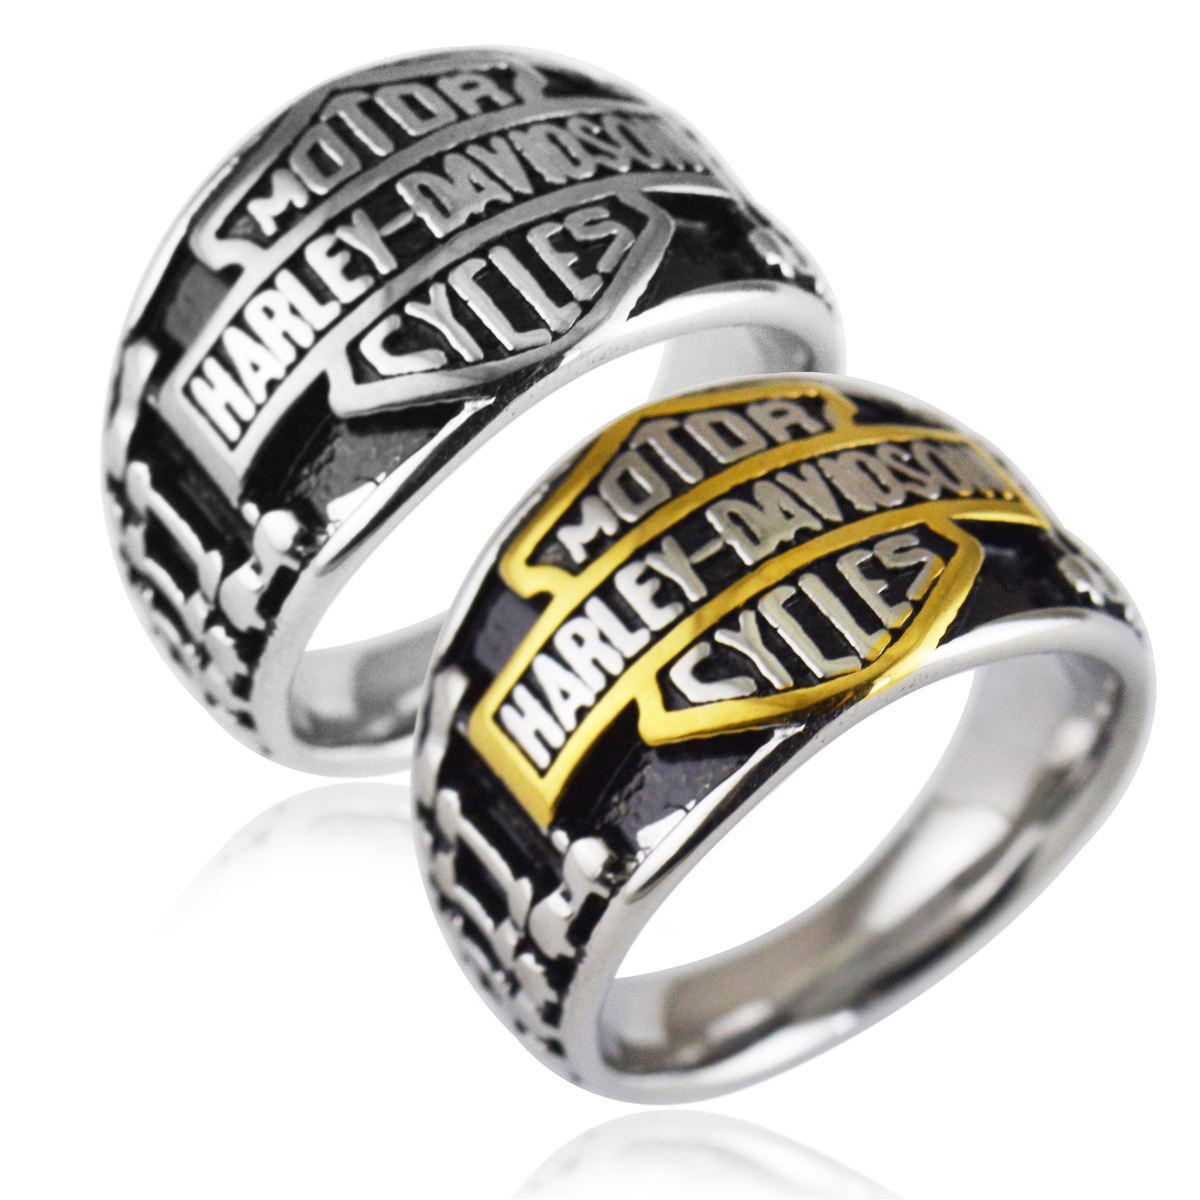 RTSZO-328 Fashion stylish Europe HARLEY vintage rings silver ring design for men silver ring